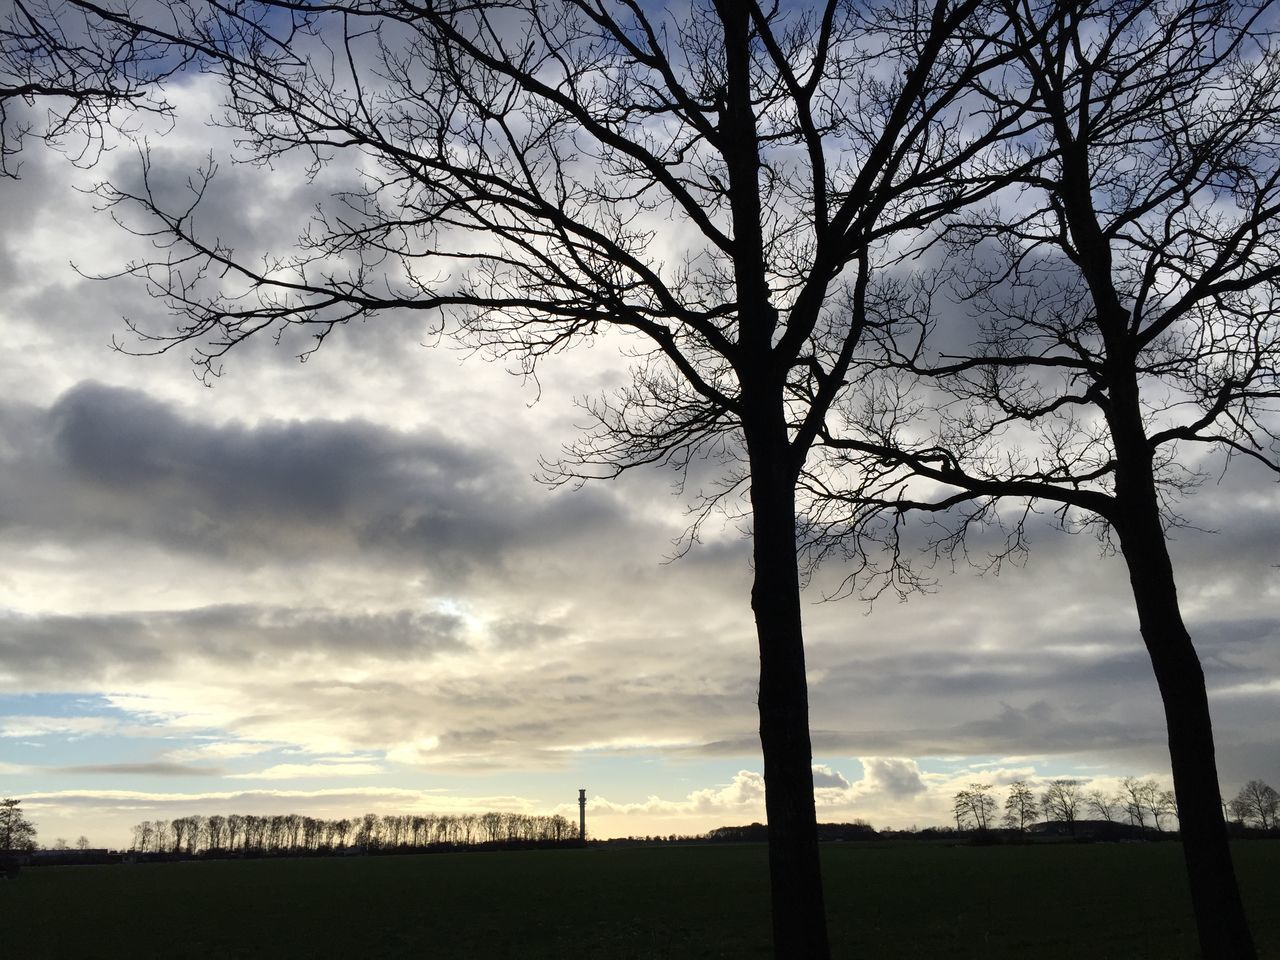 Silhouette Bare Trees On Field Against Cloudy Sky